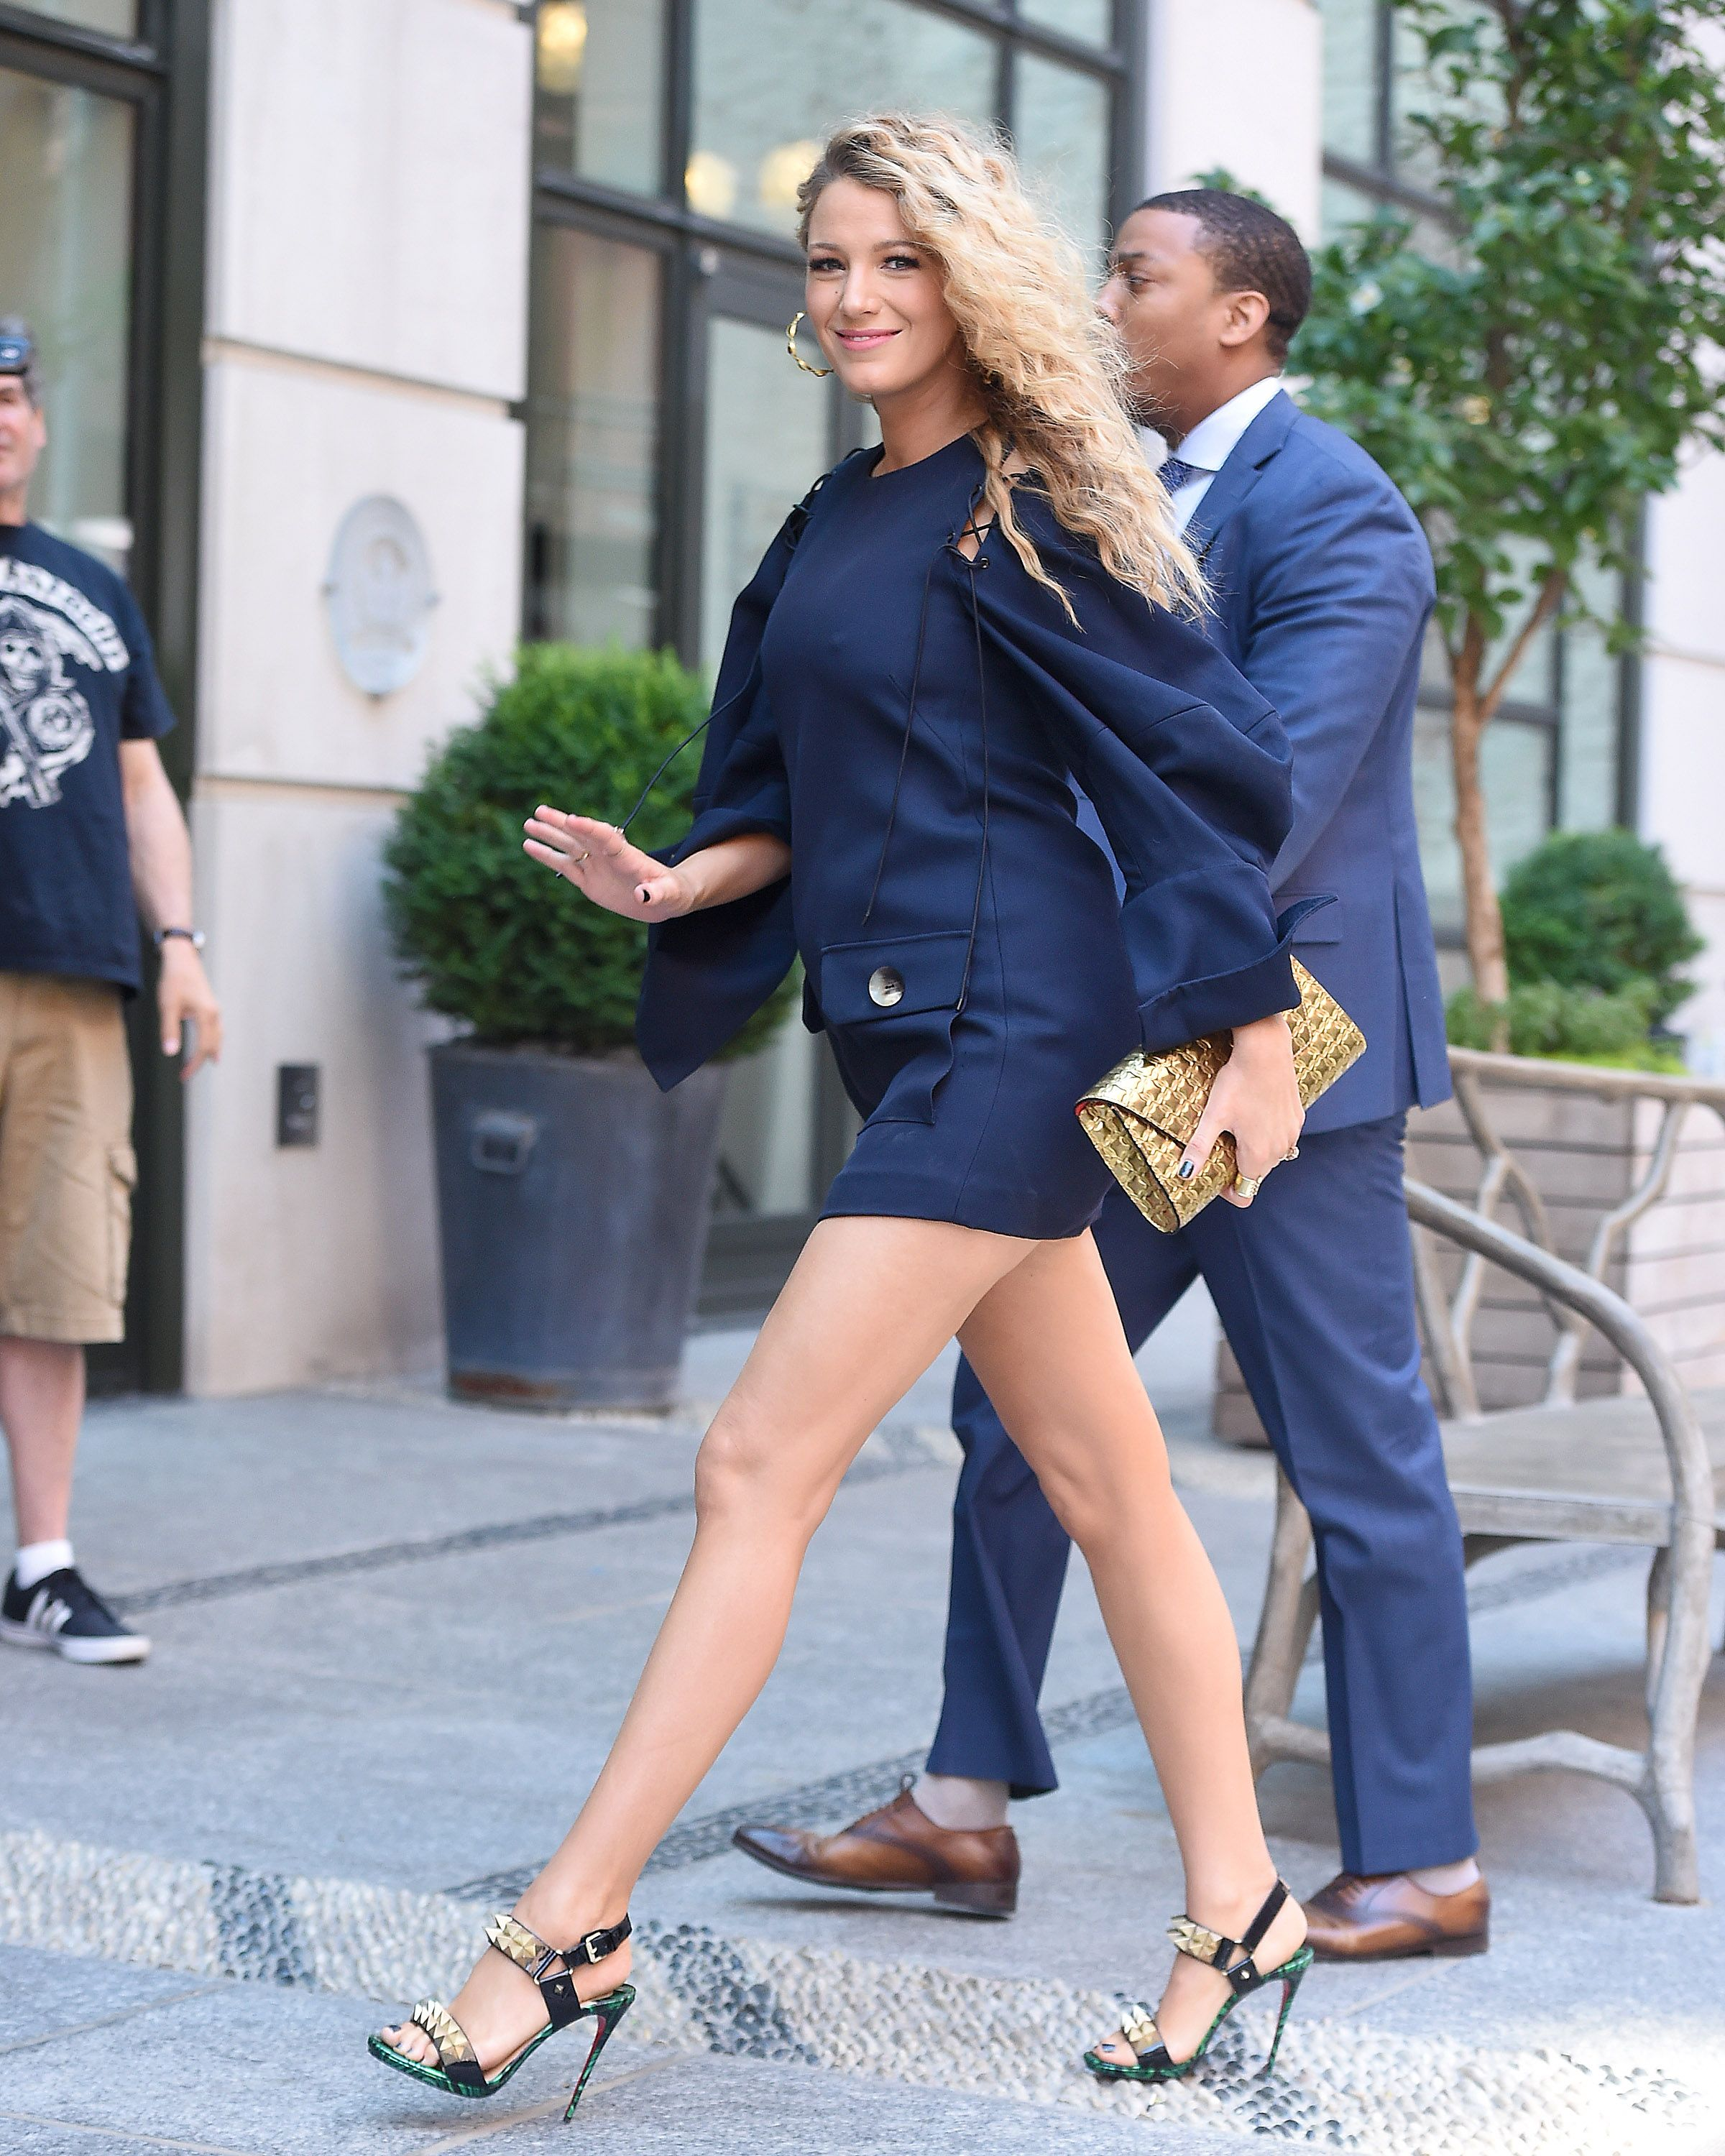 Blake Lively looks iconic in stunning high heels in New York